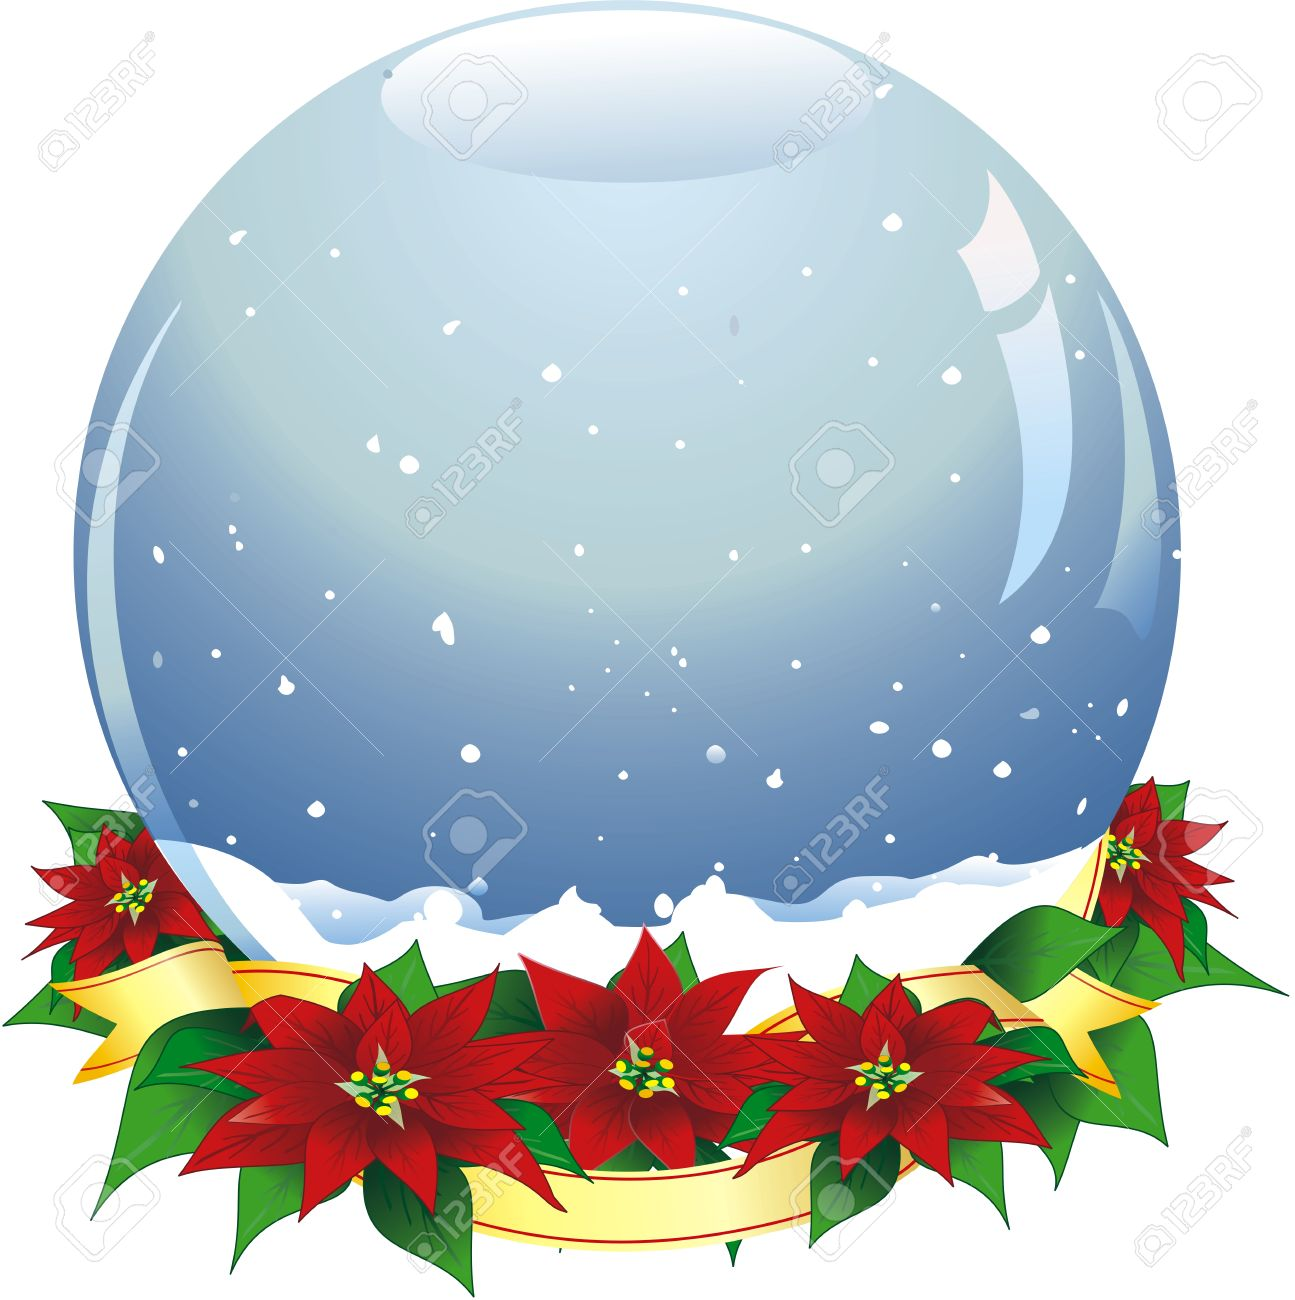 91 Snowdome Stock Illustrations, Cliparts And Royalty Free.